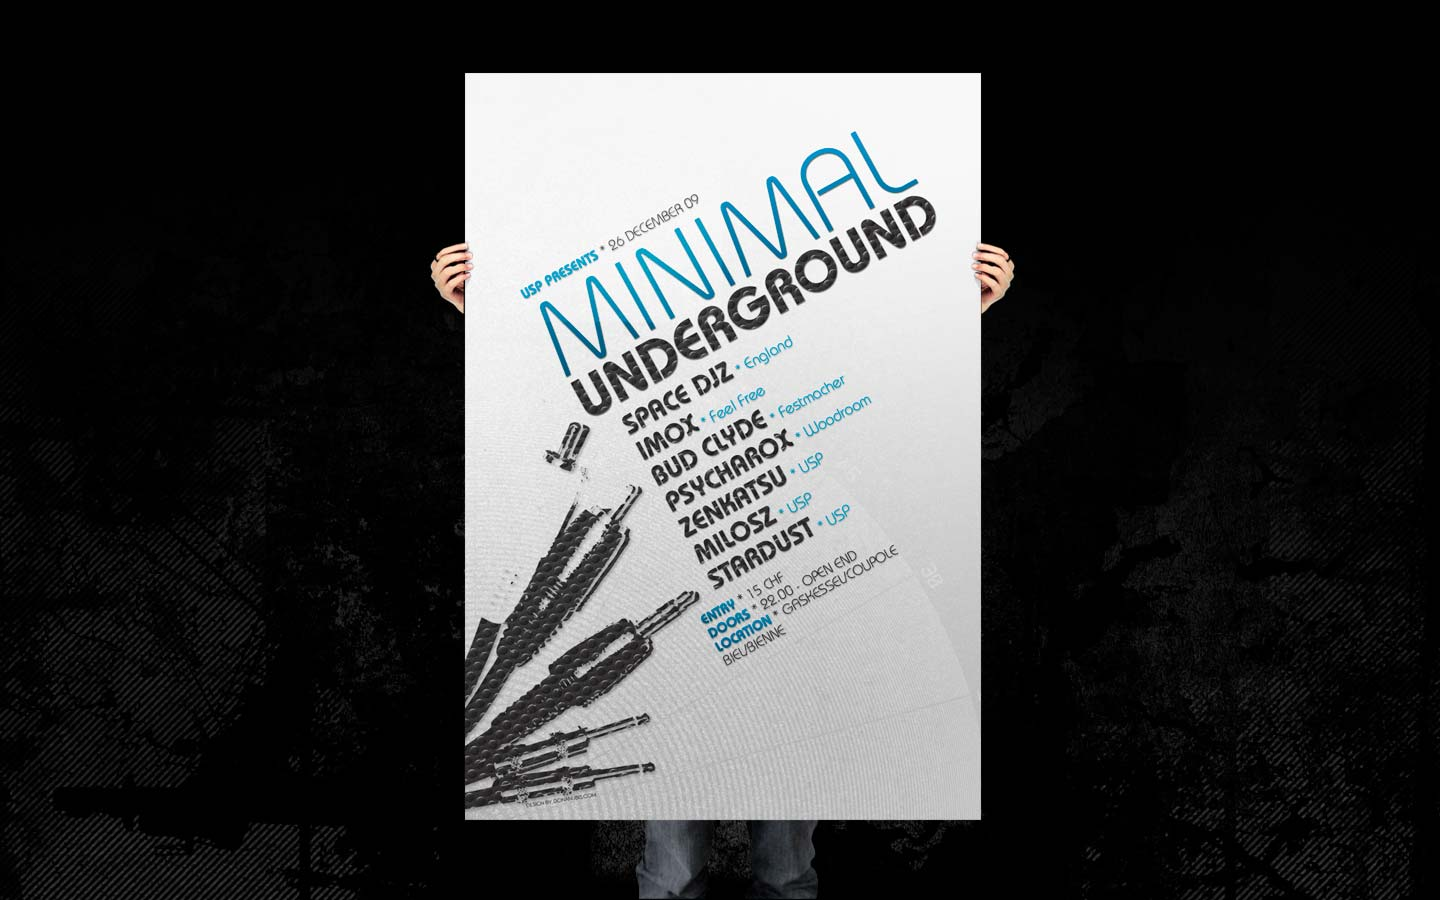 USP - Minimal Underground II - Laurent Lemoigne - Donanubis - Don Anubis - Graphic Design - Underground Sound Promotion - Coupole - Bienne - Art - Music - Electronic - Party - Event - Flyer - Poster - Techno - Minimal - Electro - Alternative - Underground - Geneva - Switzerland - Space DJZ - Imox / Feel Free - Bud Clyde / Festmacher - Psycharox / Woodroom - Zenkatsu - Milosz - Stardust